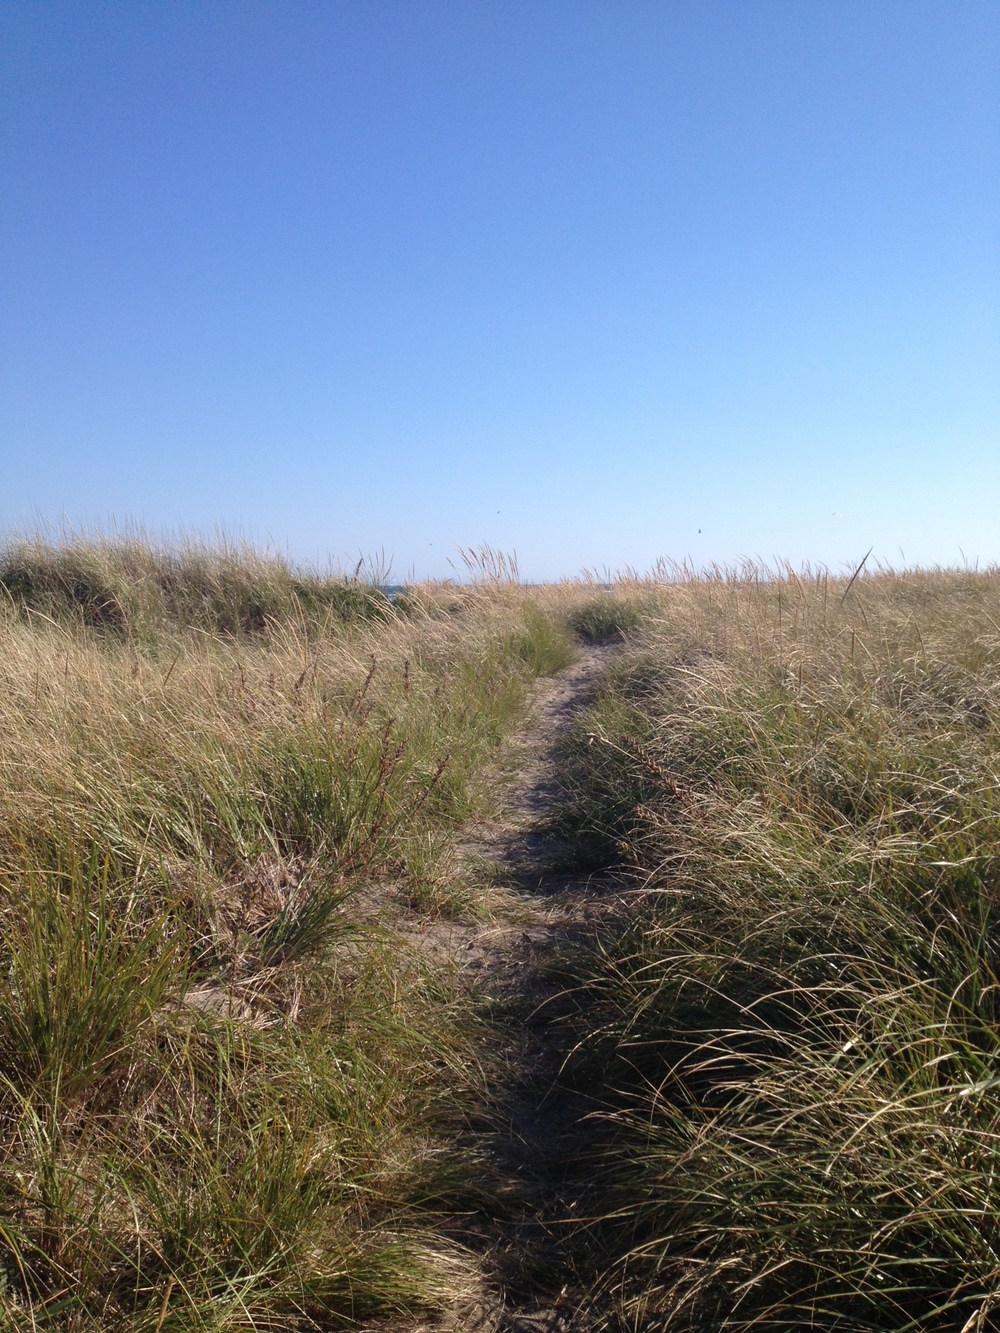 Breathing in the warm spiciness of sun soaked sand, grass and sea air in the dunes